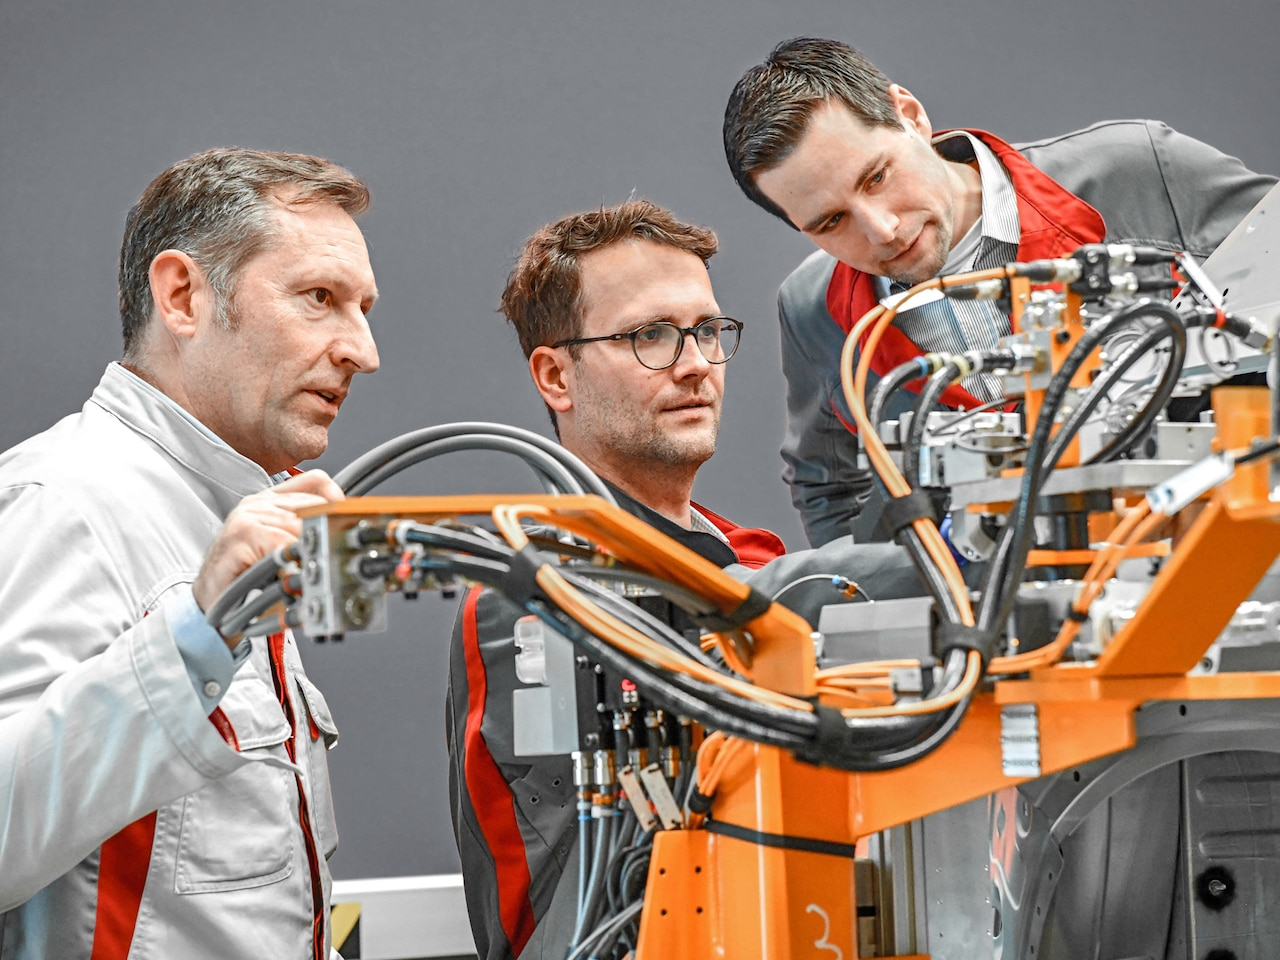 Peter Stechel (Head of the Analysis Center, left), Ralf Hofmeister (Head of the technical center for body measurement technology), and Thomas Reeb (Head of measurement technology, right) examine sensors on an inline measuring station at the Ingolstadt plant.